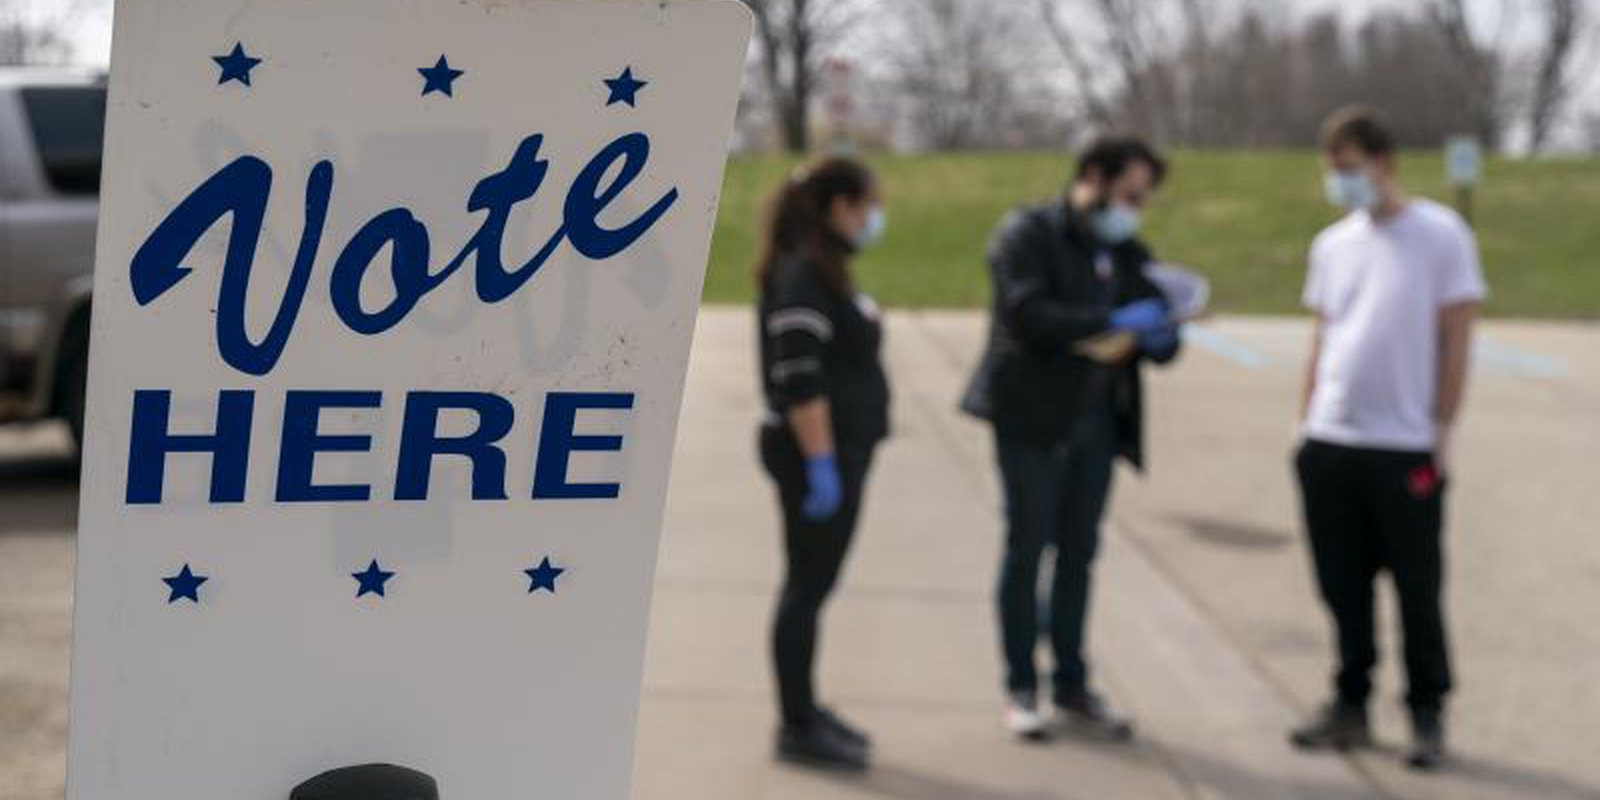 Roadside voting in Madison, Wisconsin in April 2020. Because of coronavirus, the number of polling places was drastically reduced. Photo by Andy Manis/Getty Images.